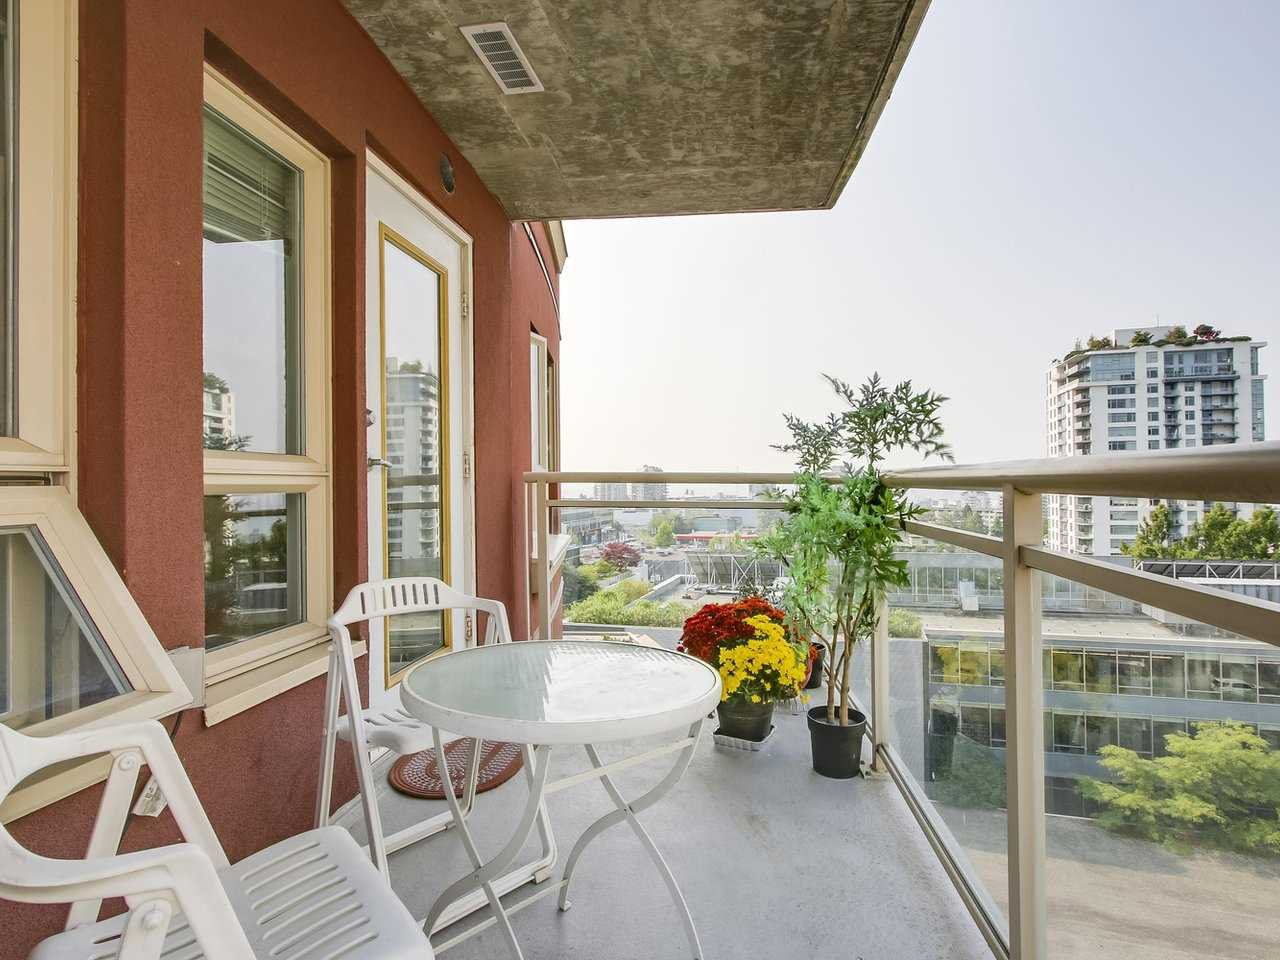 """Photo 3: Photos: 801 121 W 15TH Street in North Vancouver: Central Lonsdale Condo for sale in """"ALEGRIA"""" : MLS®# R2196958"""